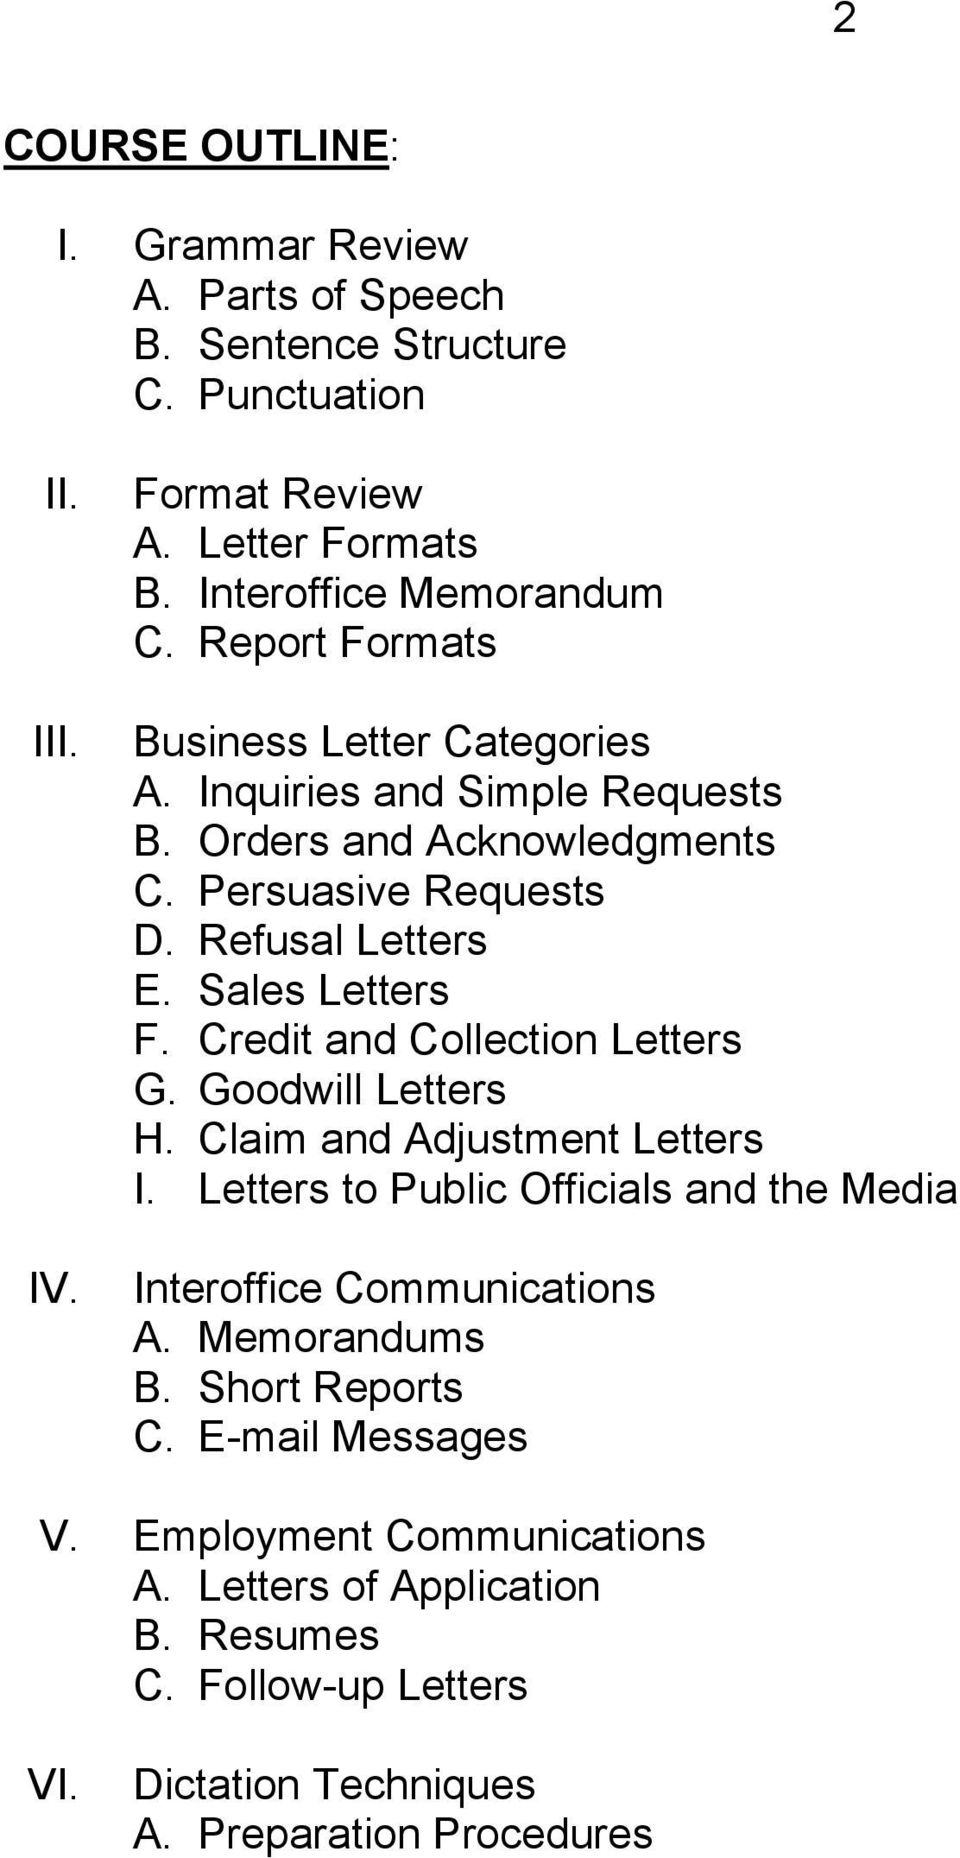 Credit and Collection Letters G. Goodwill Letters H. Claim and Adjustment Letters I. Letters to Public Officials and the Media IV. Interoffice Communications A.